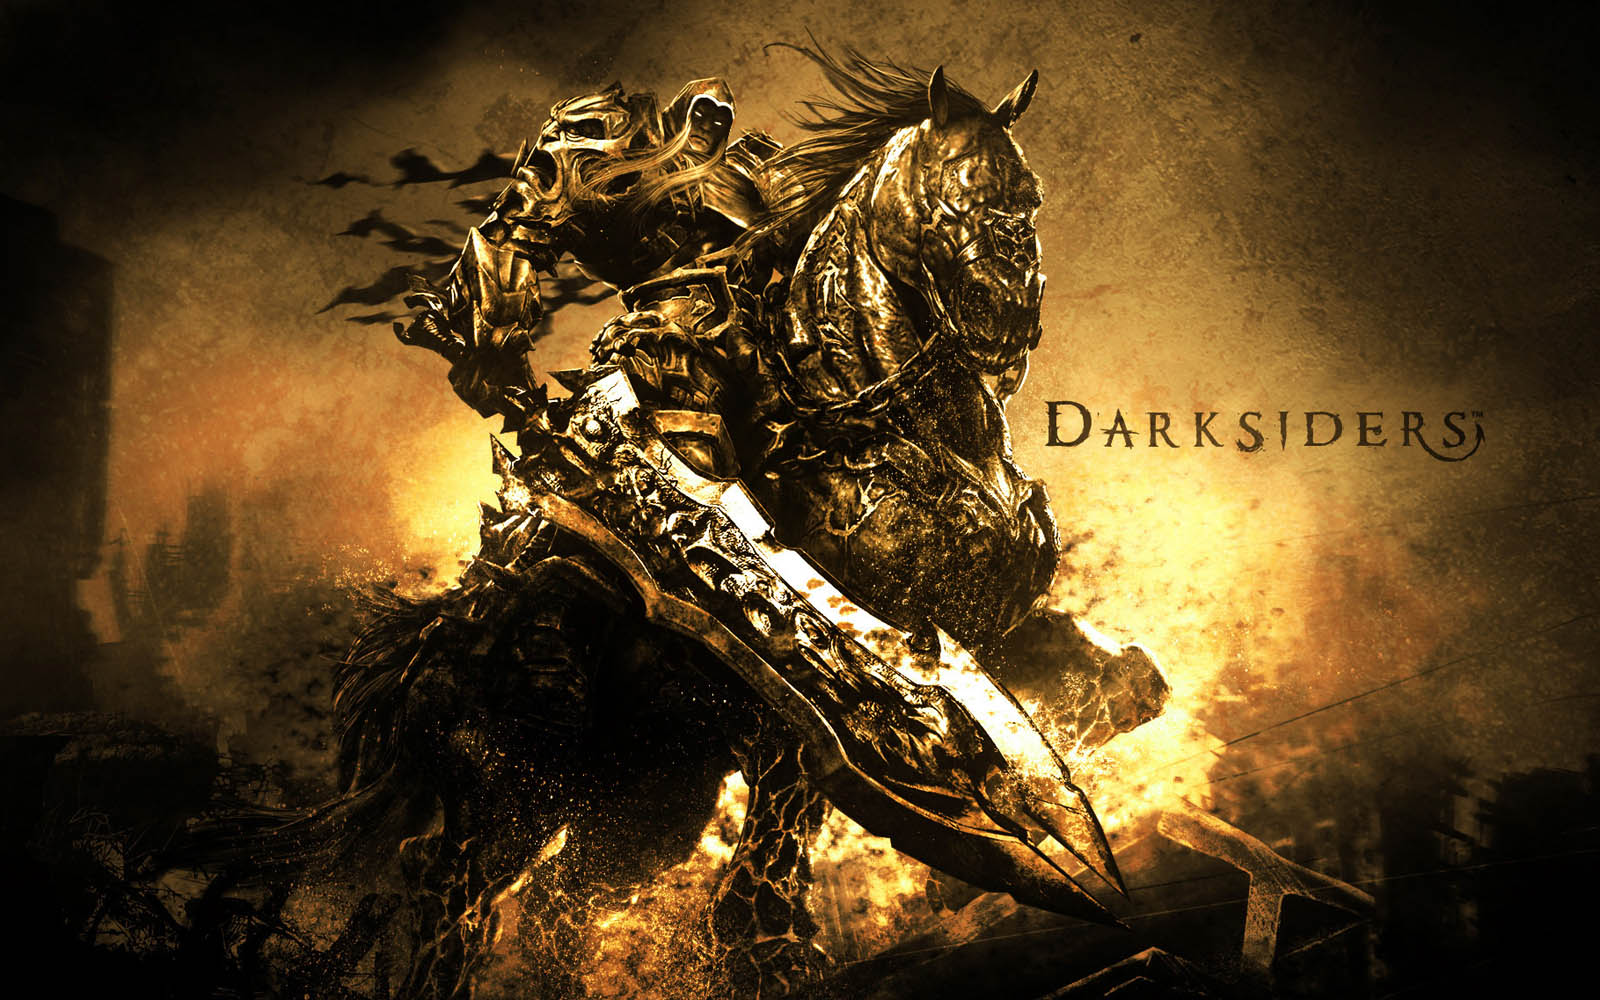 Tag Darksiders Game Wallpapers Backgrounds Photos Pictures and 1600x1000